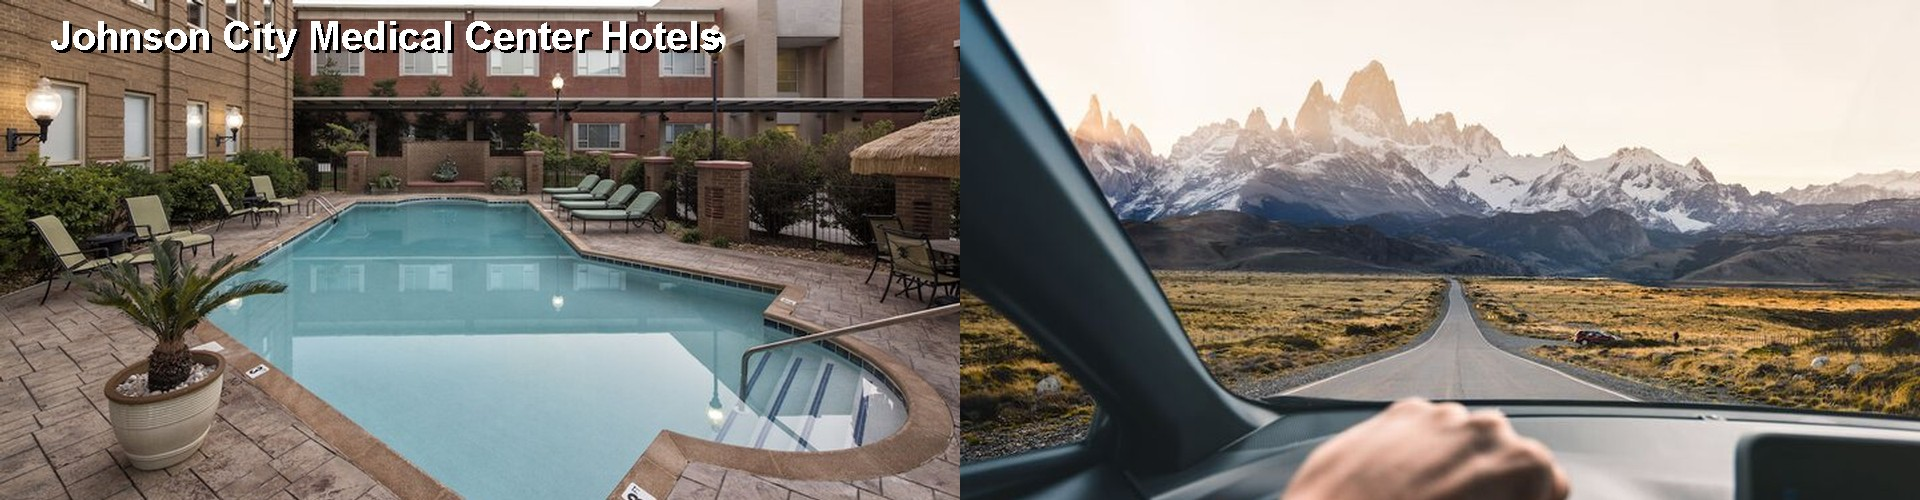 5 Best Hotels near Johnson City Medical Center